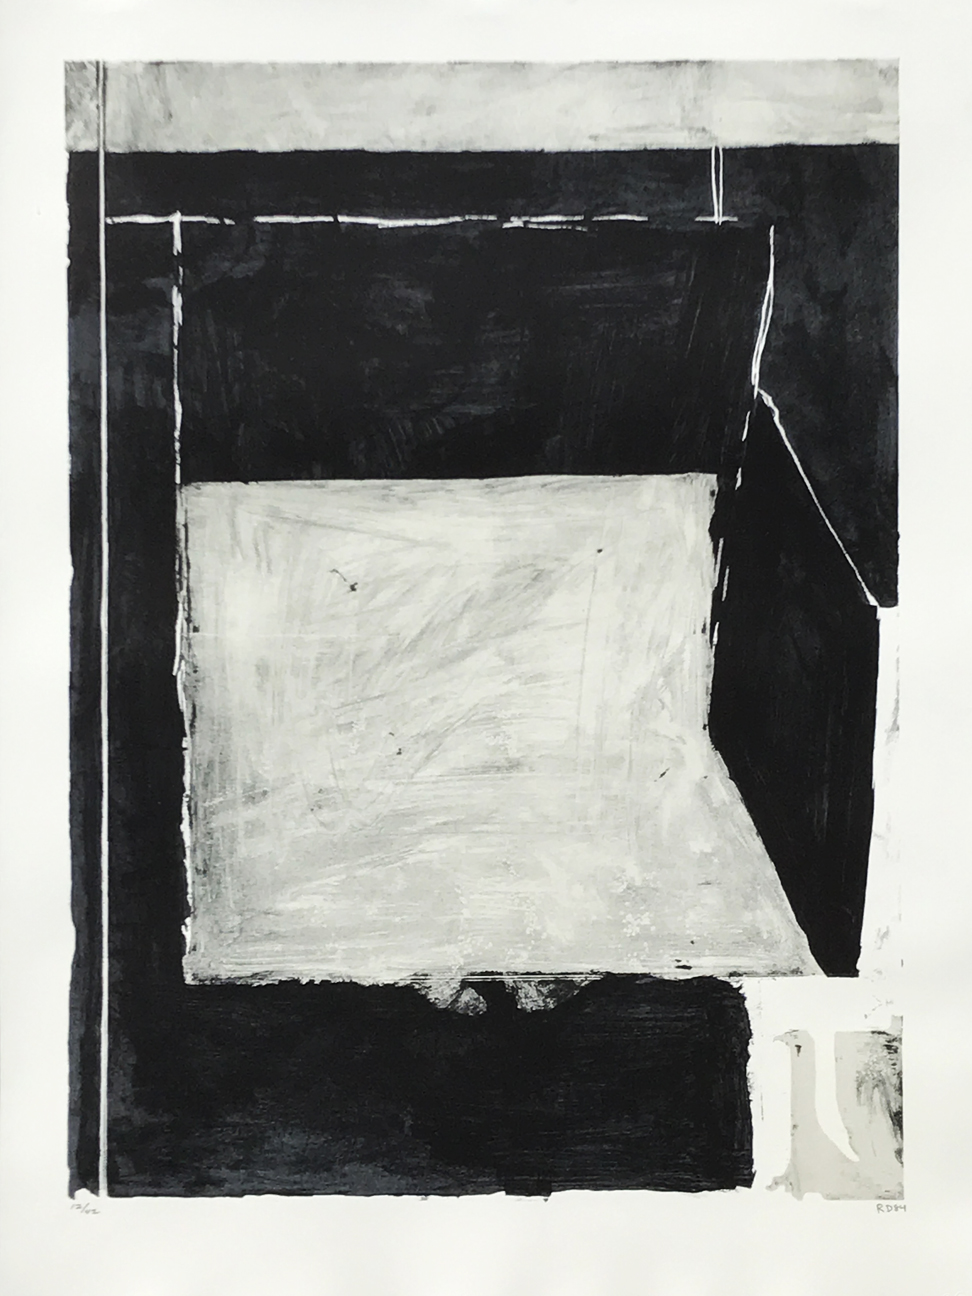 2.	Richard Diebenkorn. Black and Grey, 1984. 3 color lithograph, ed. 12/42, 30 x 21 7/8 in.